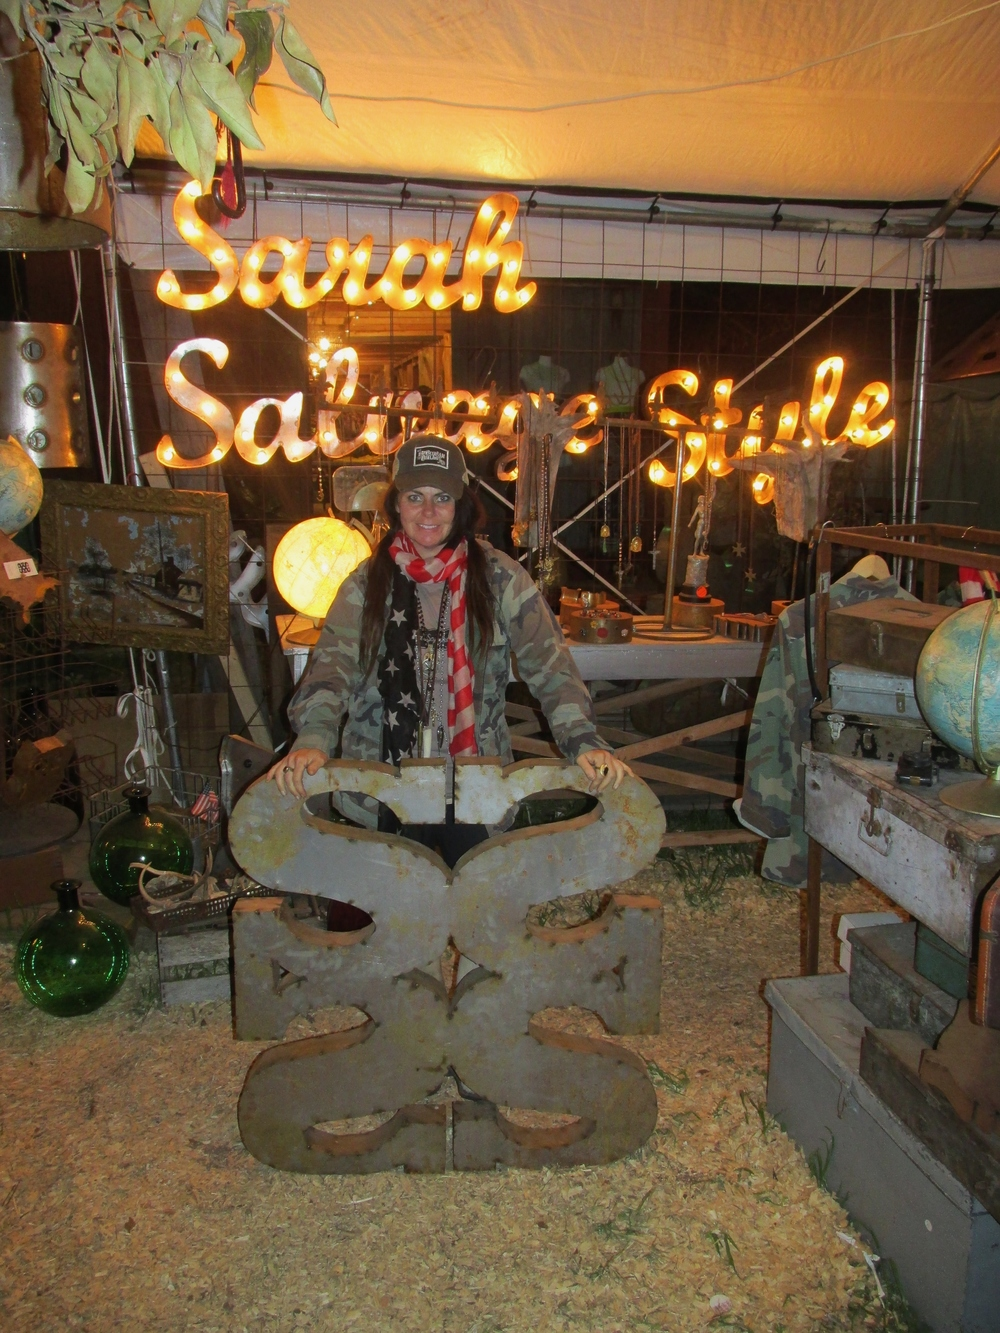 Sarah Smith Salvage Style.jpg